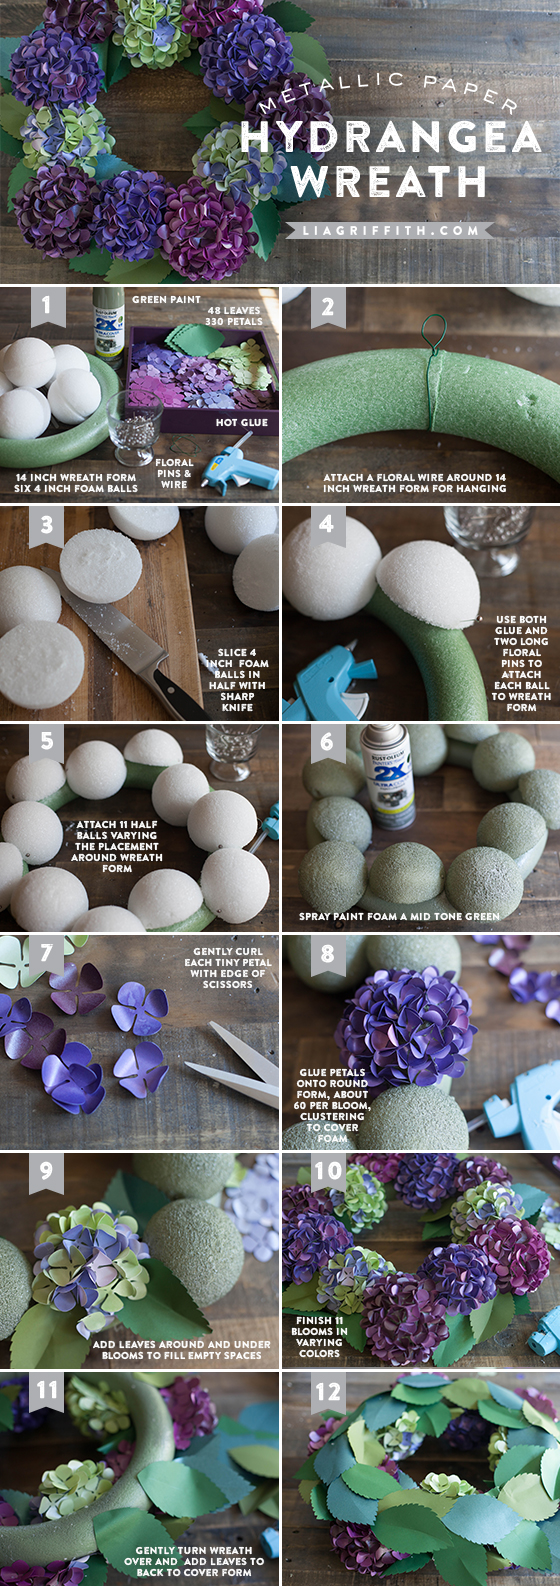 Photo tutorial for diy paper hydrangea wreath by Lia Griffith